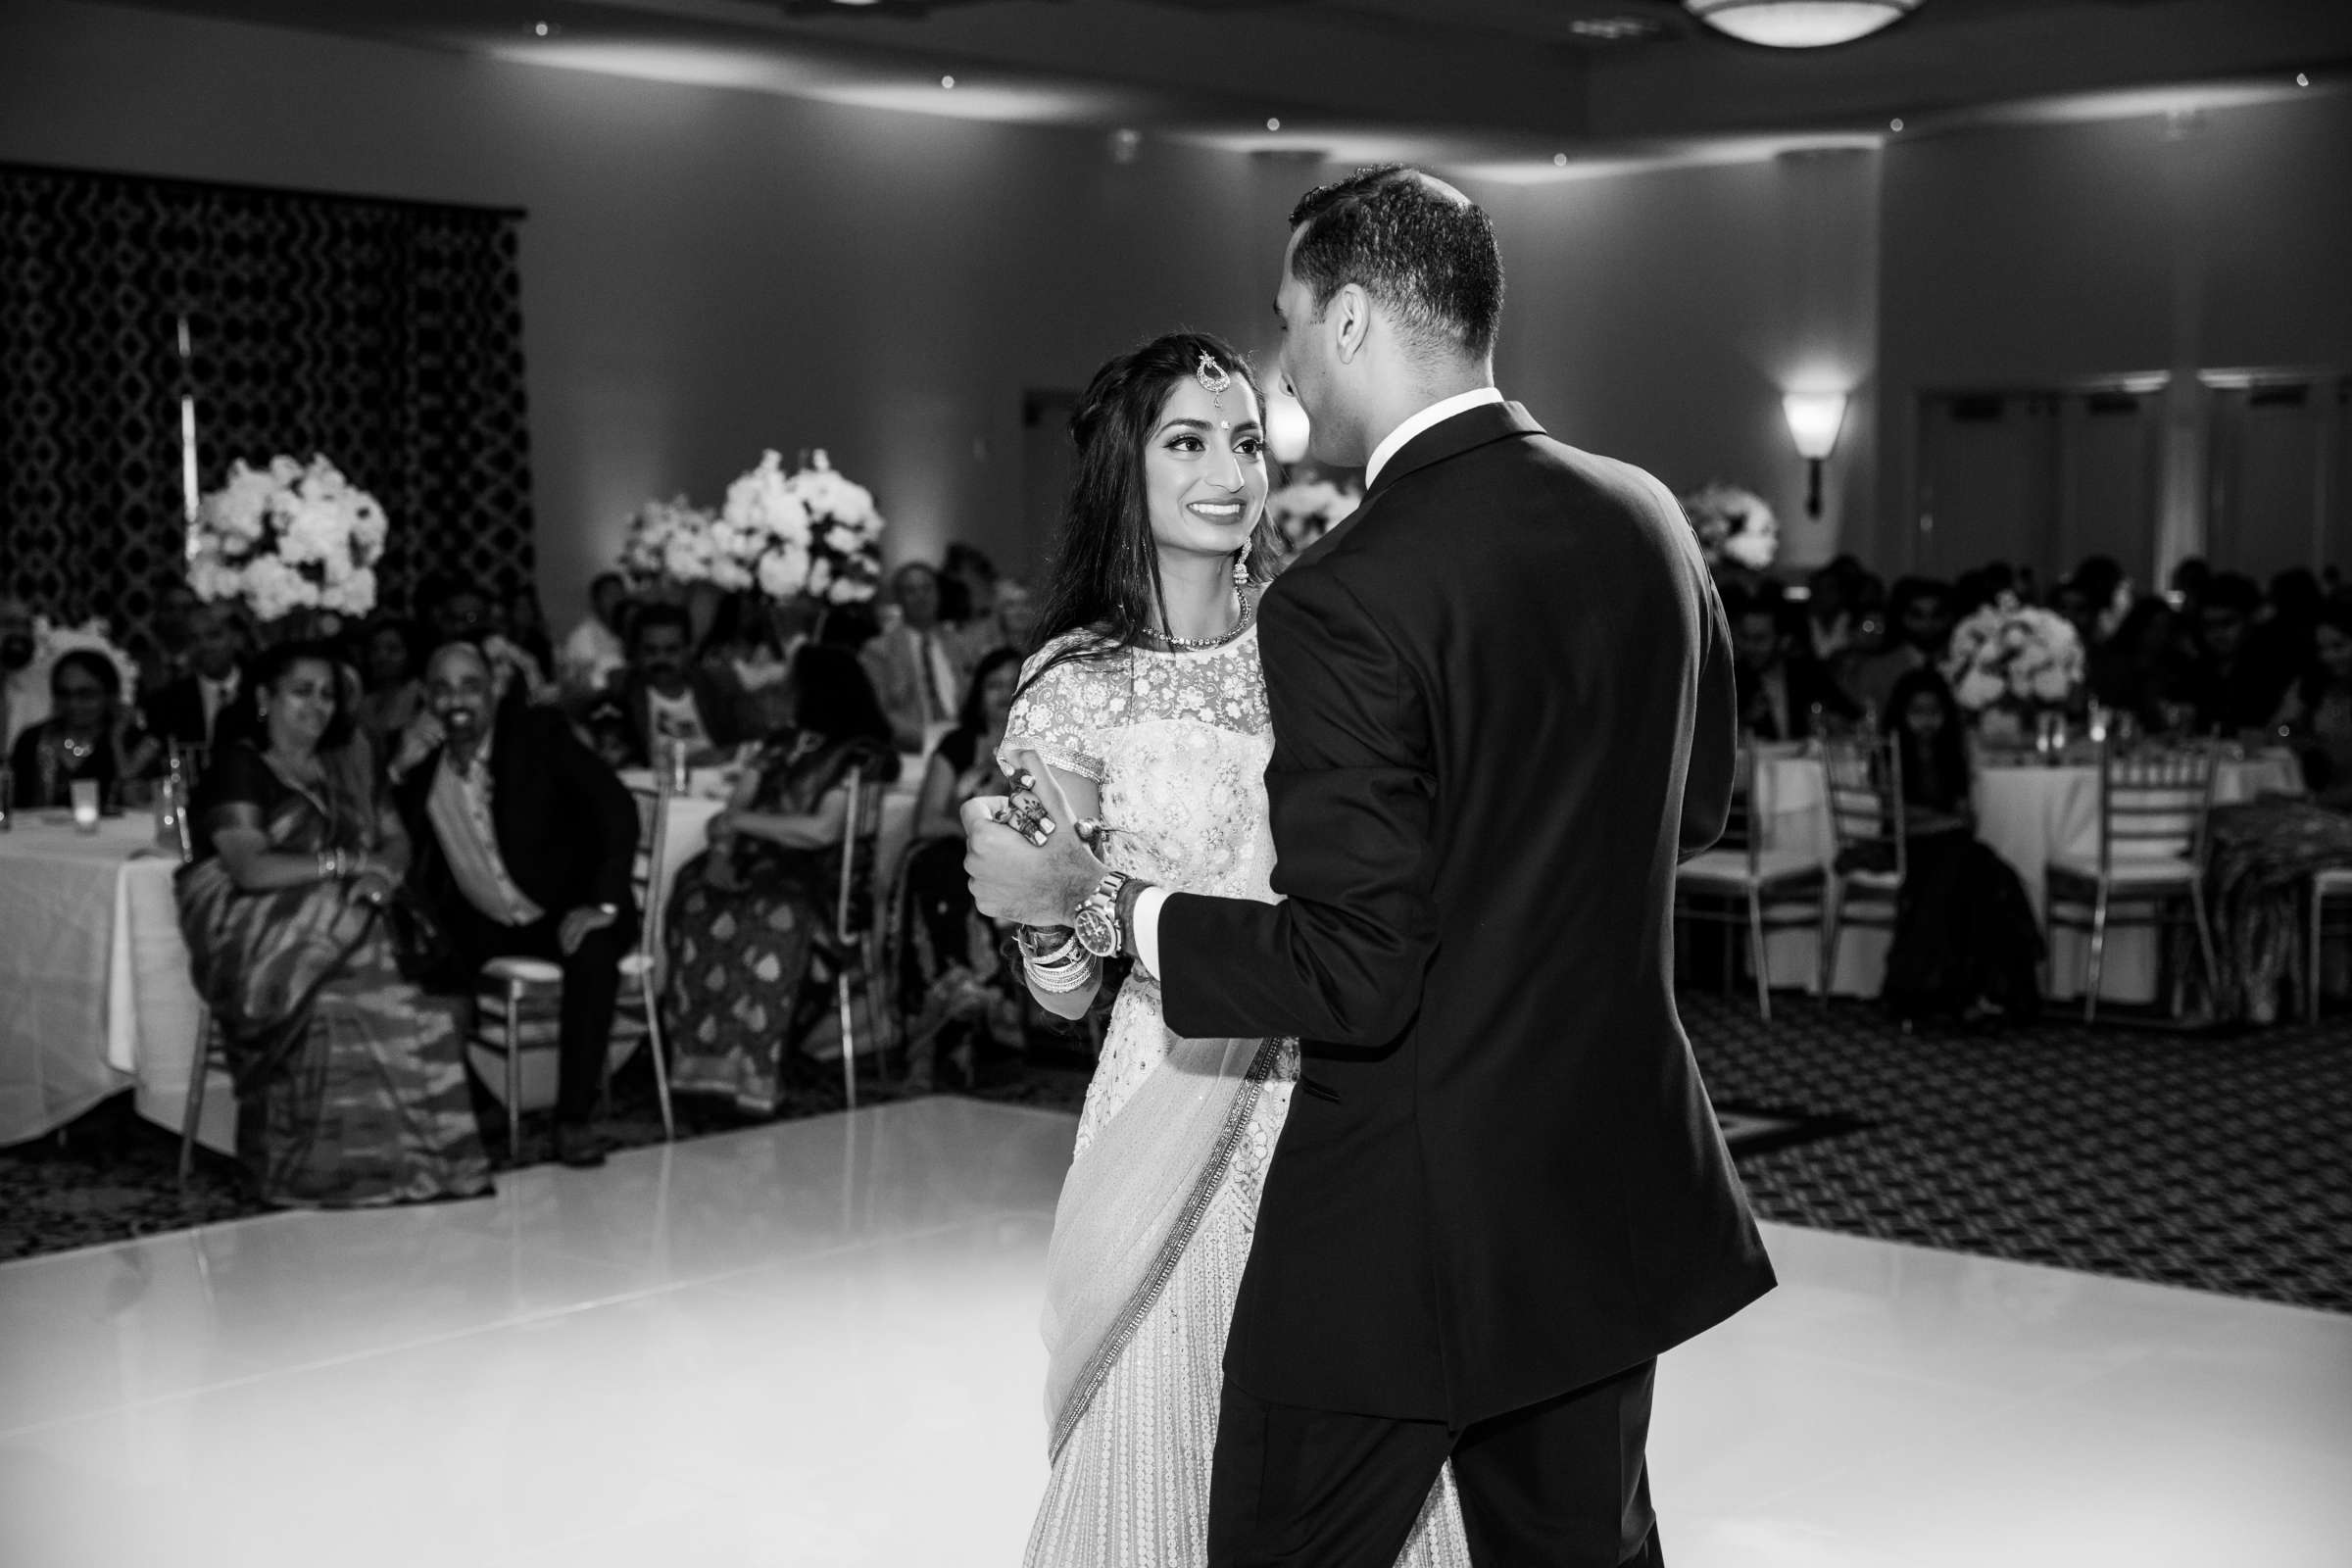 The Westin Carlsbad Resort and Spa Wedding coordinated by Shilpa Patel Events, Ami and Amit Wedding Photo #229 by True Photography